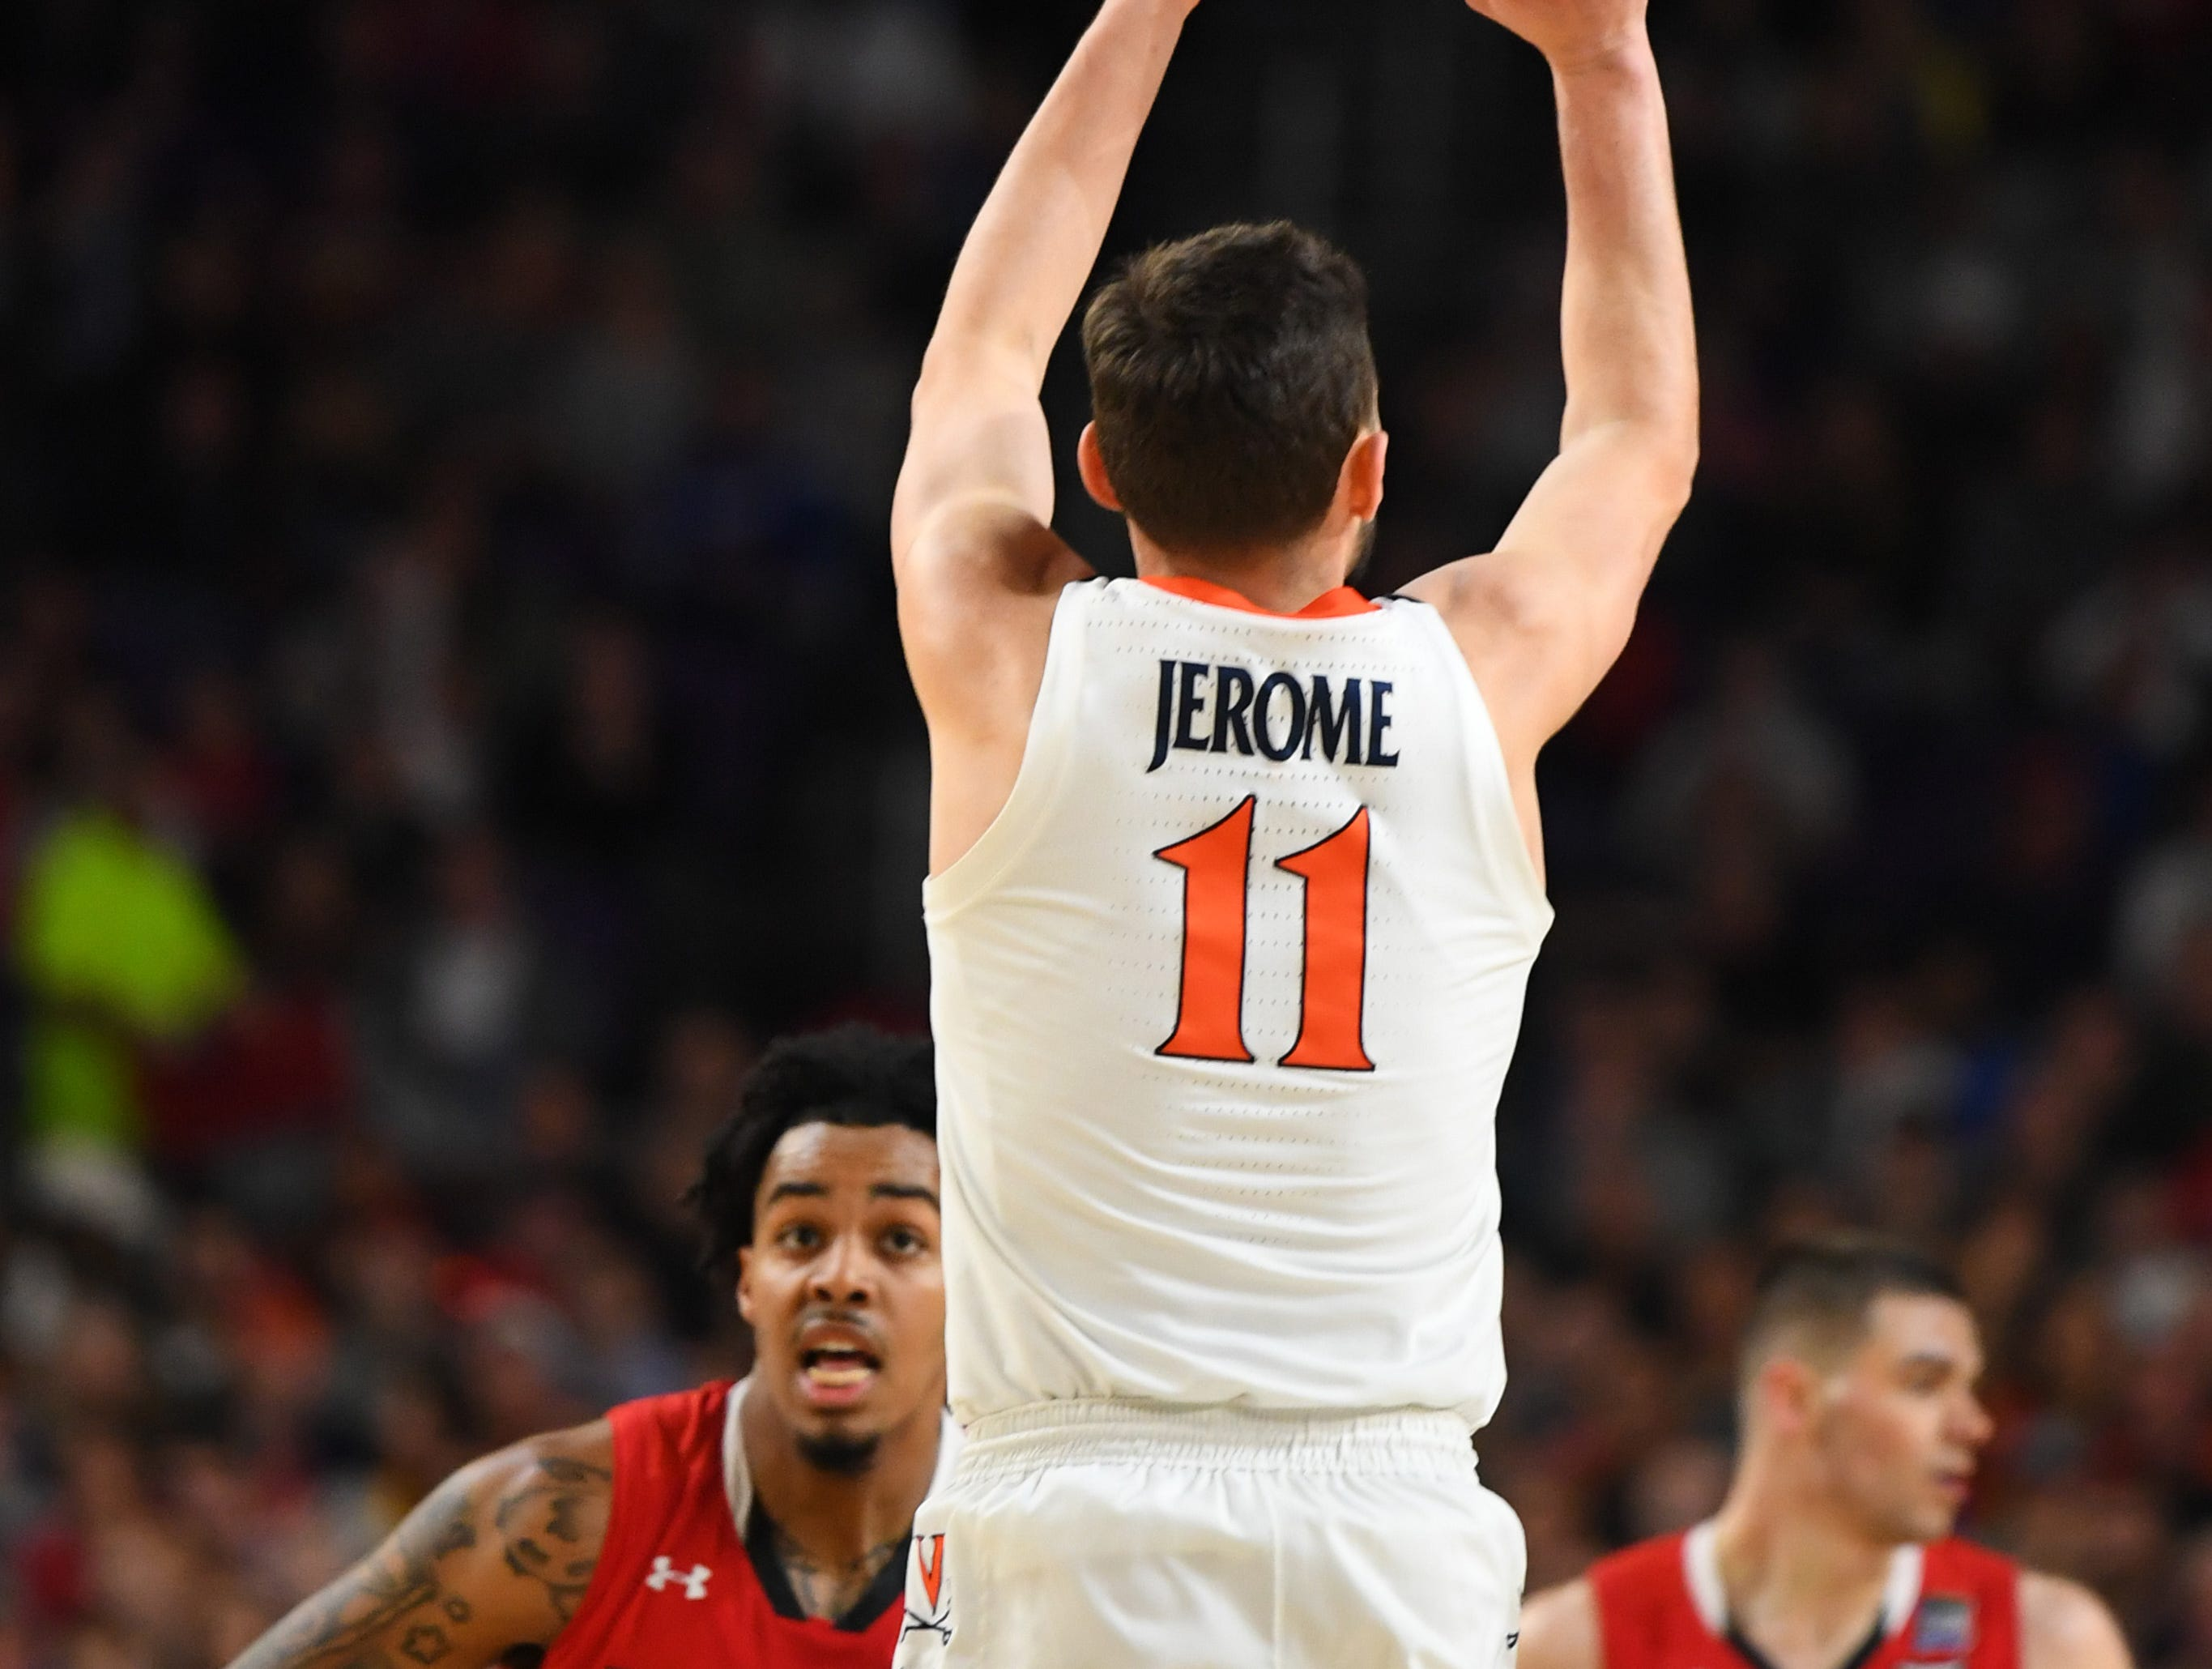 Apr 8, 2019; Minneapolis, MN, USA; Virginia Cavaliers guard Ty Jerome (11) hits a three-point shot at the end of the half against the Virginia Cavaliers in the championship game of the 2019 men's Final Four at US Bank Stadium. Mandatory Credit: Robert Deutsch-USA TODAY Sports